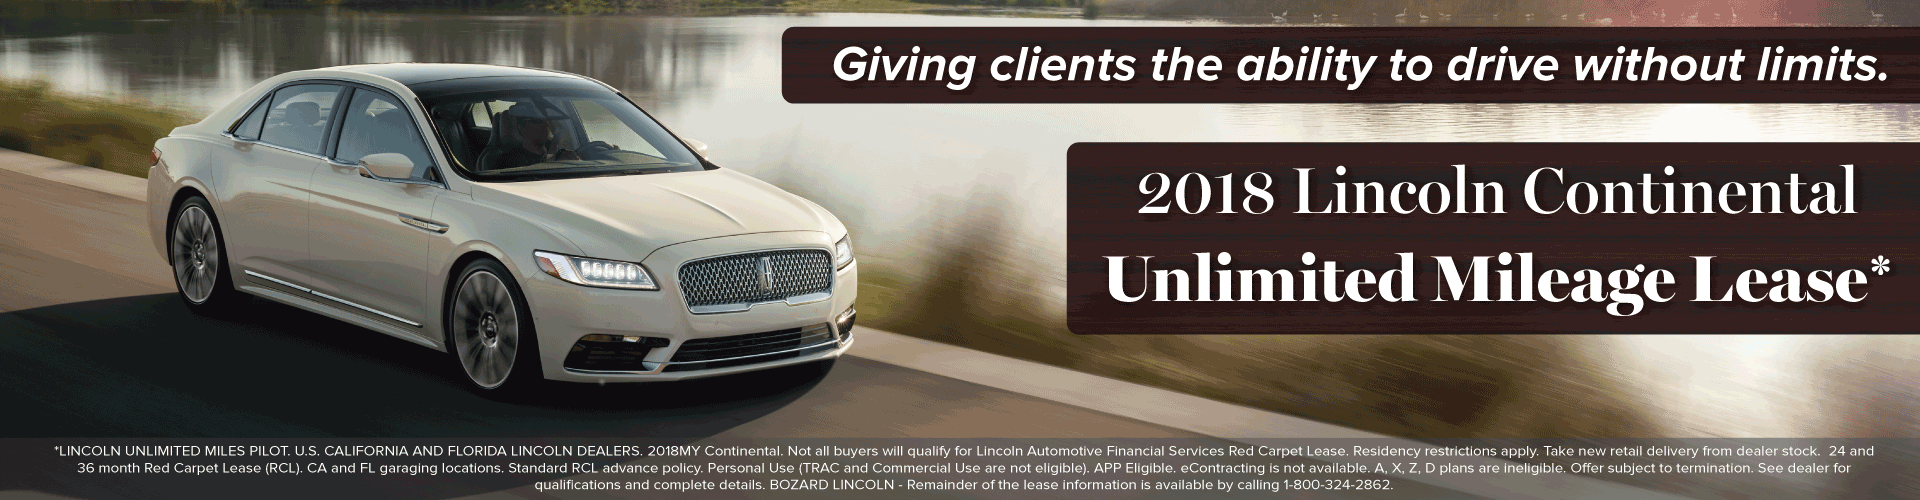 Unlimited Mileage Lease on 2018 Lincoln Continental at Bozard Lincoln of North Florida